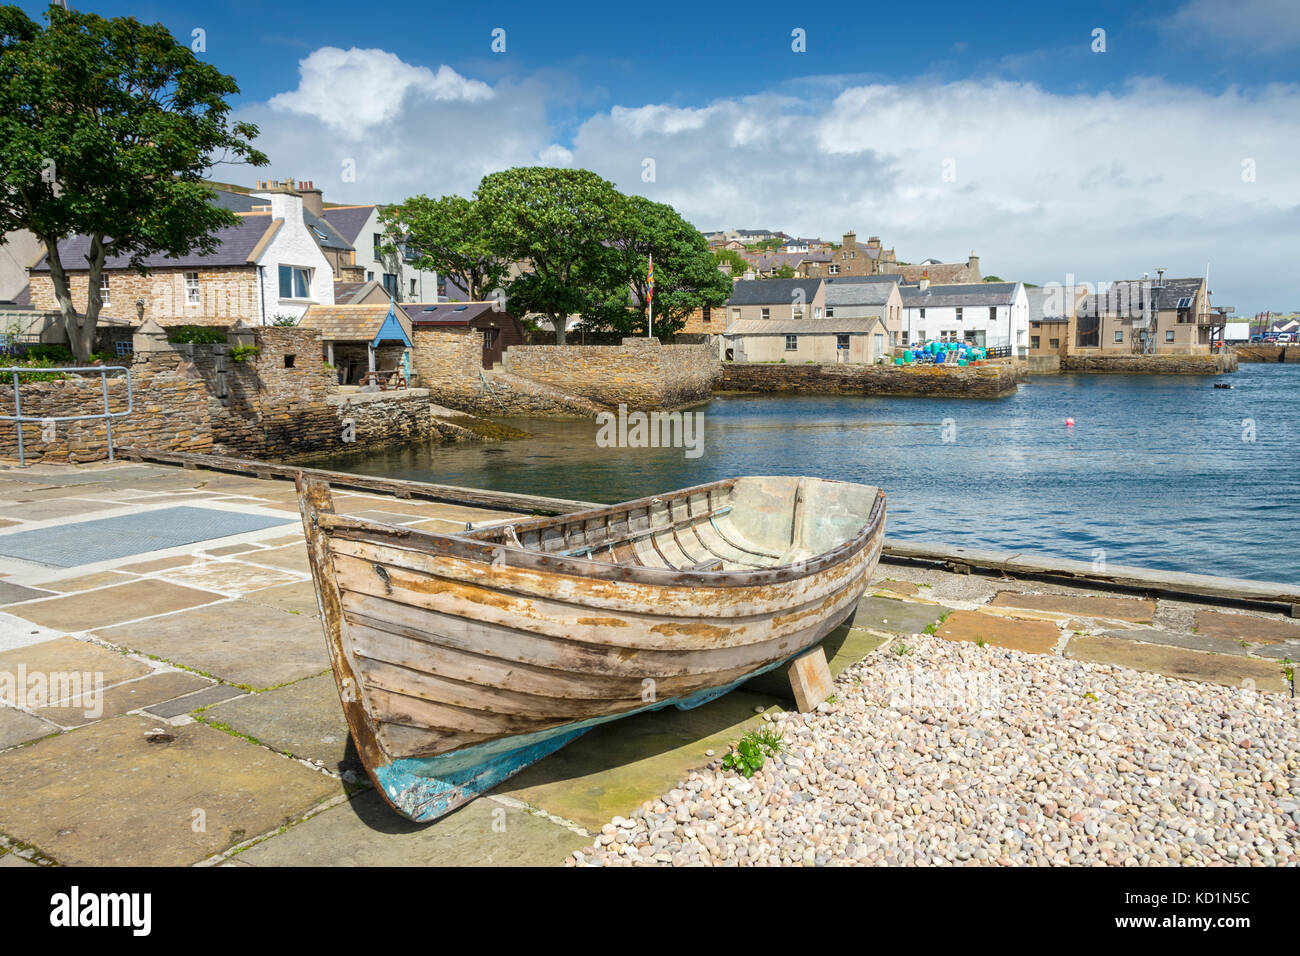 Old anchor at the old jetty, Stromness, Orkney Mainland, Scotland, UK. - Stock Image